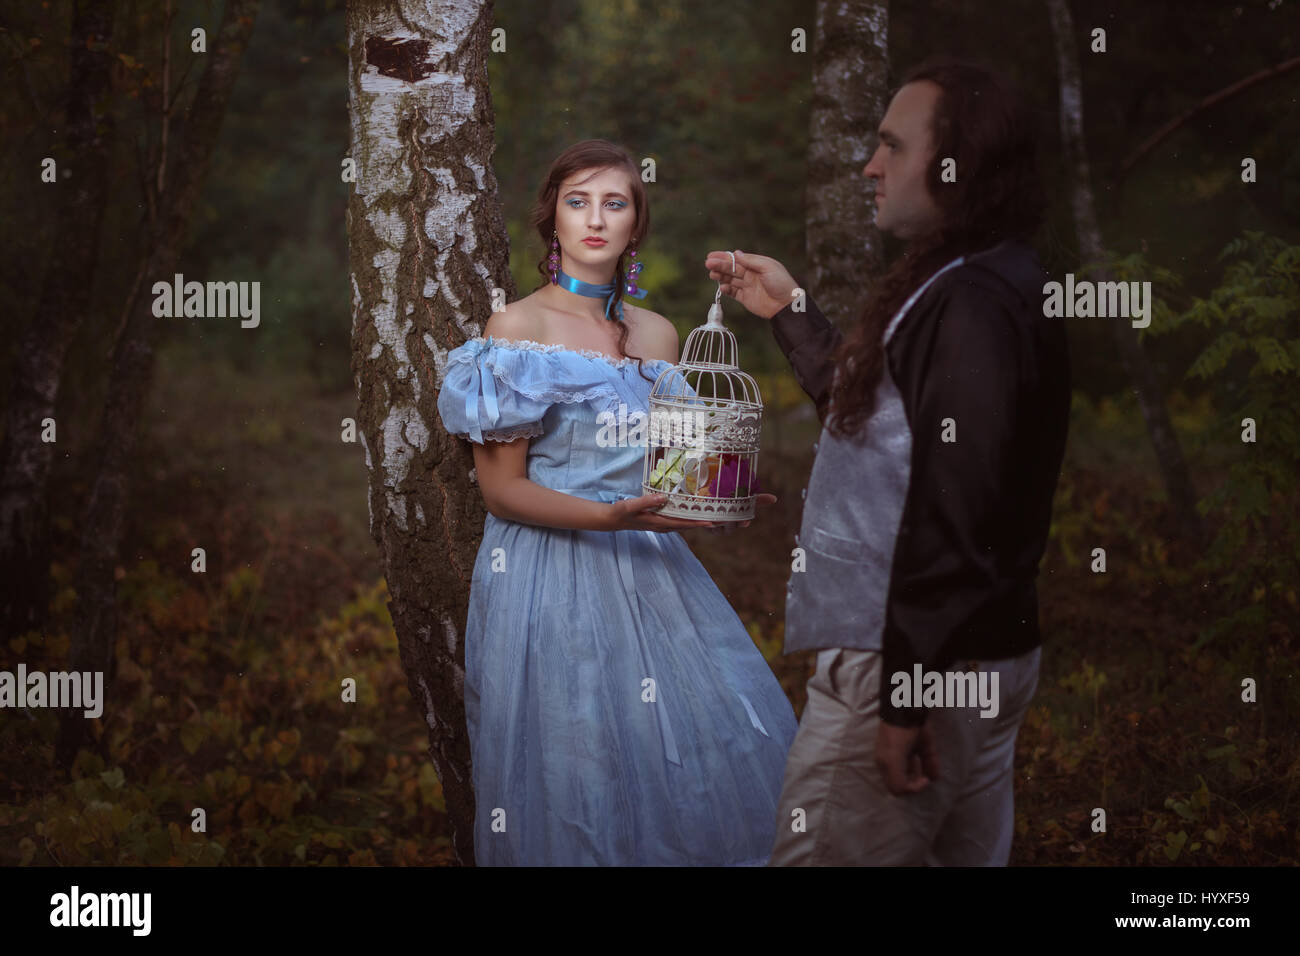 Old man makes a gift to a young woman. - Stock Image